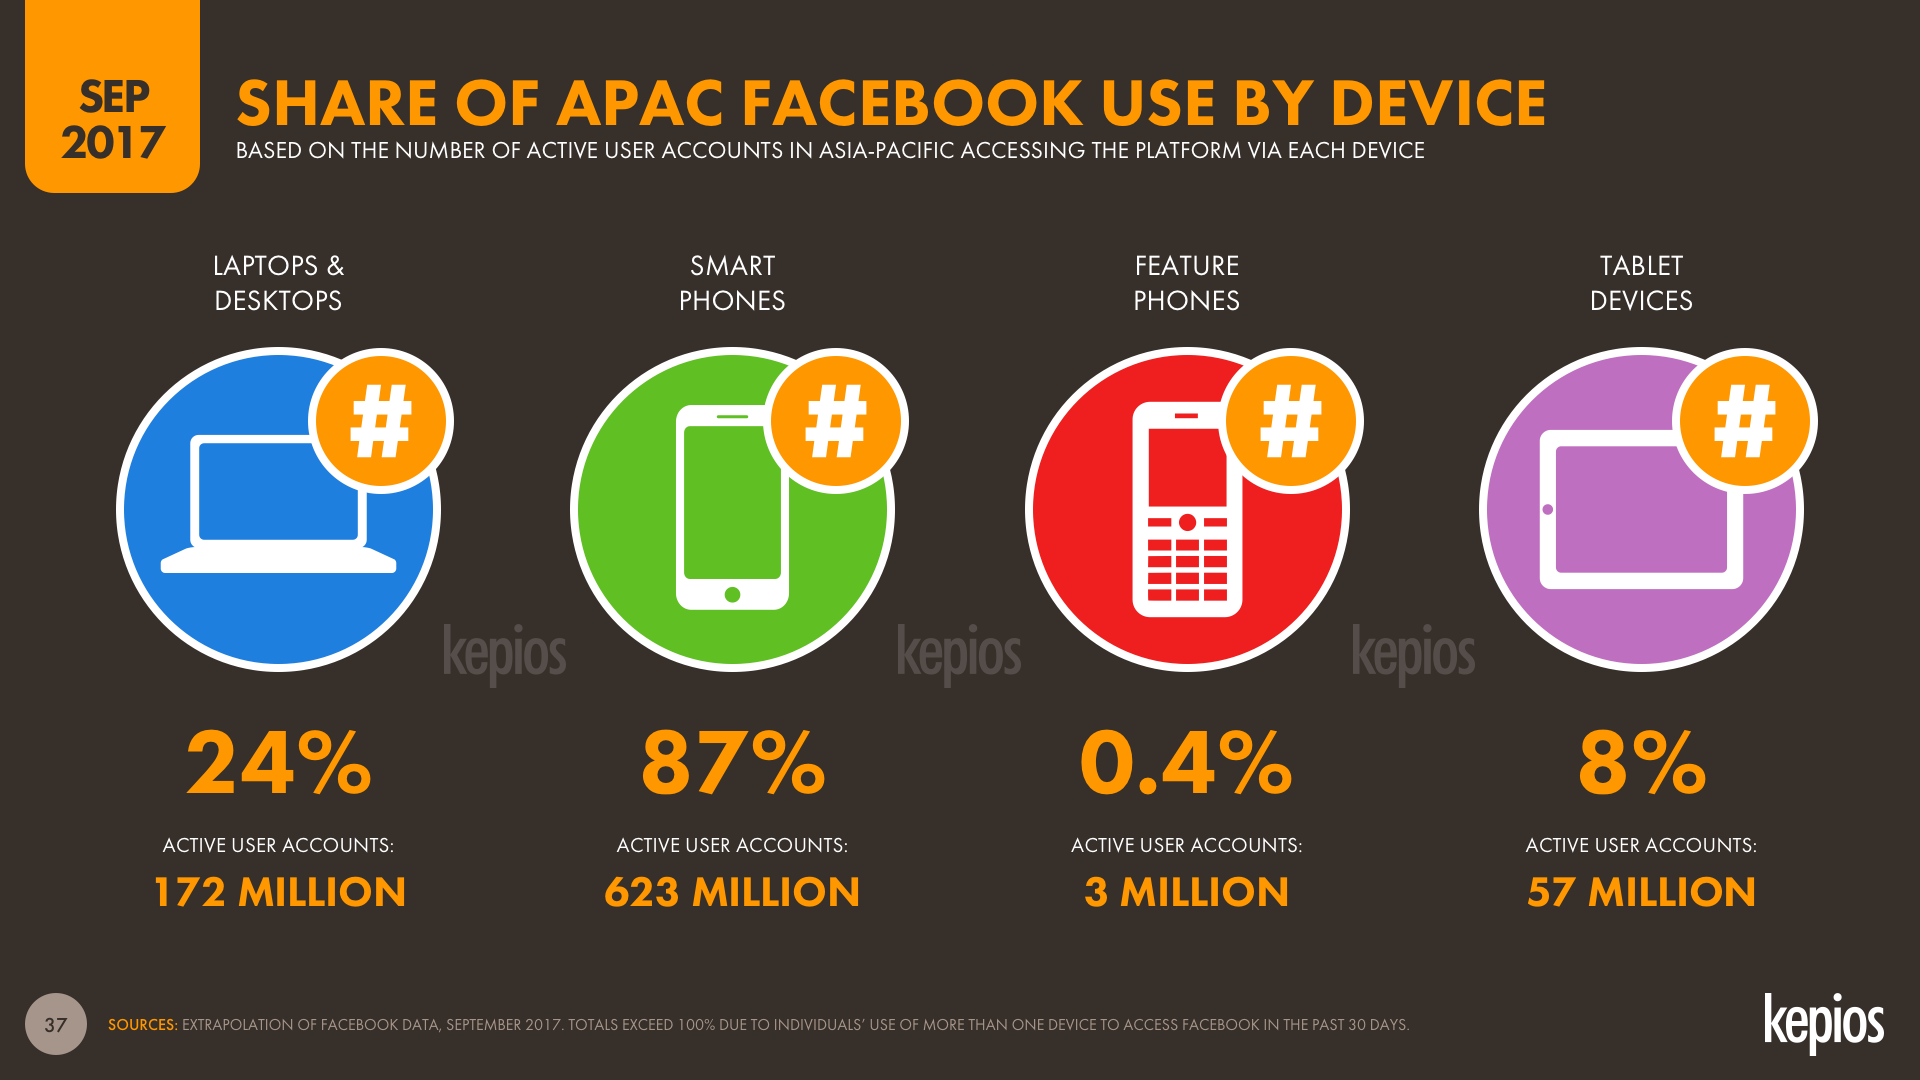 APAC Facebook Access by Device, Sep 2017